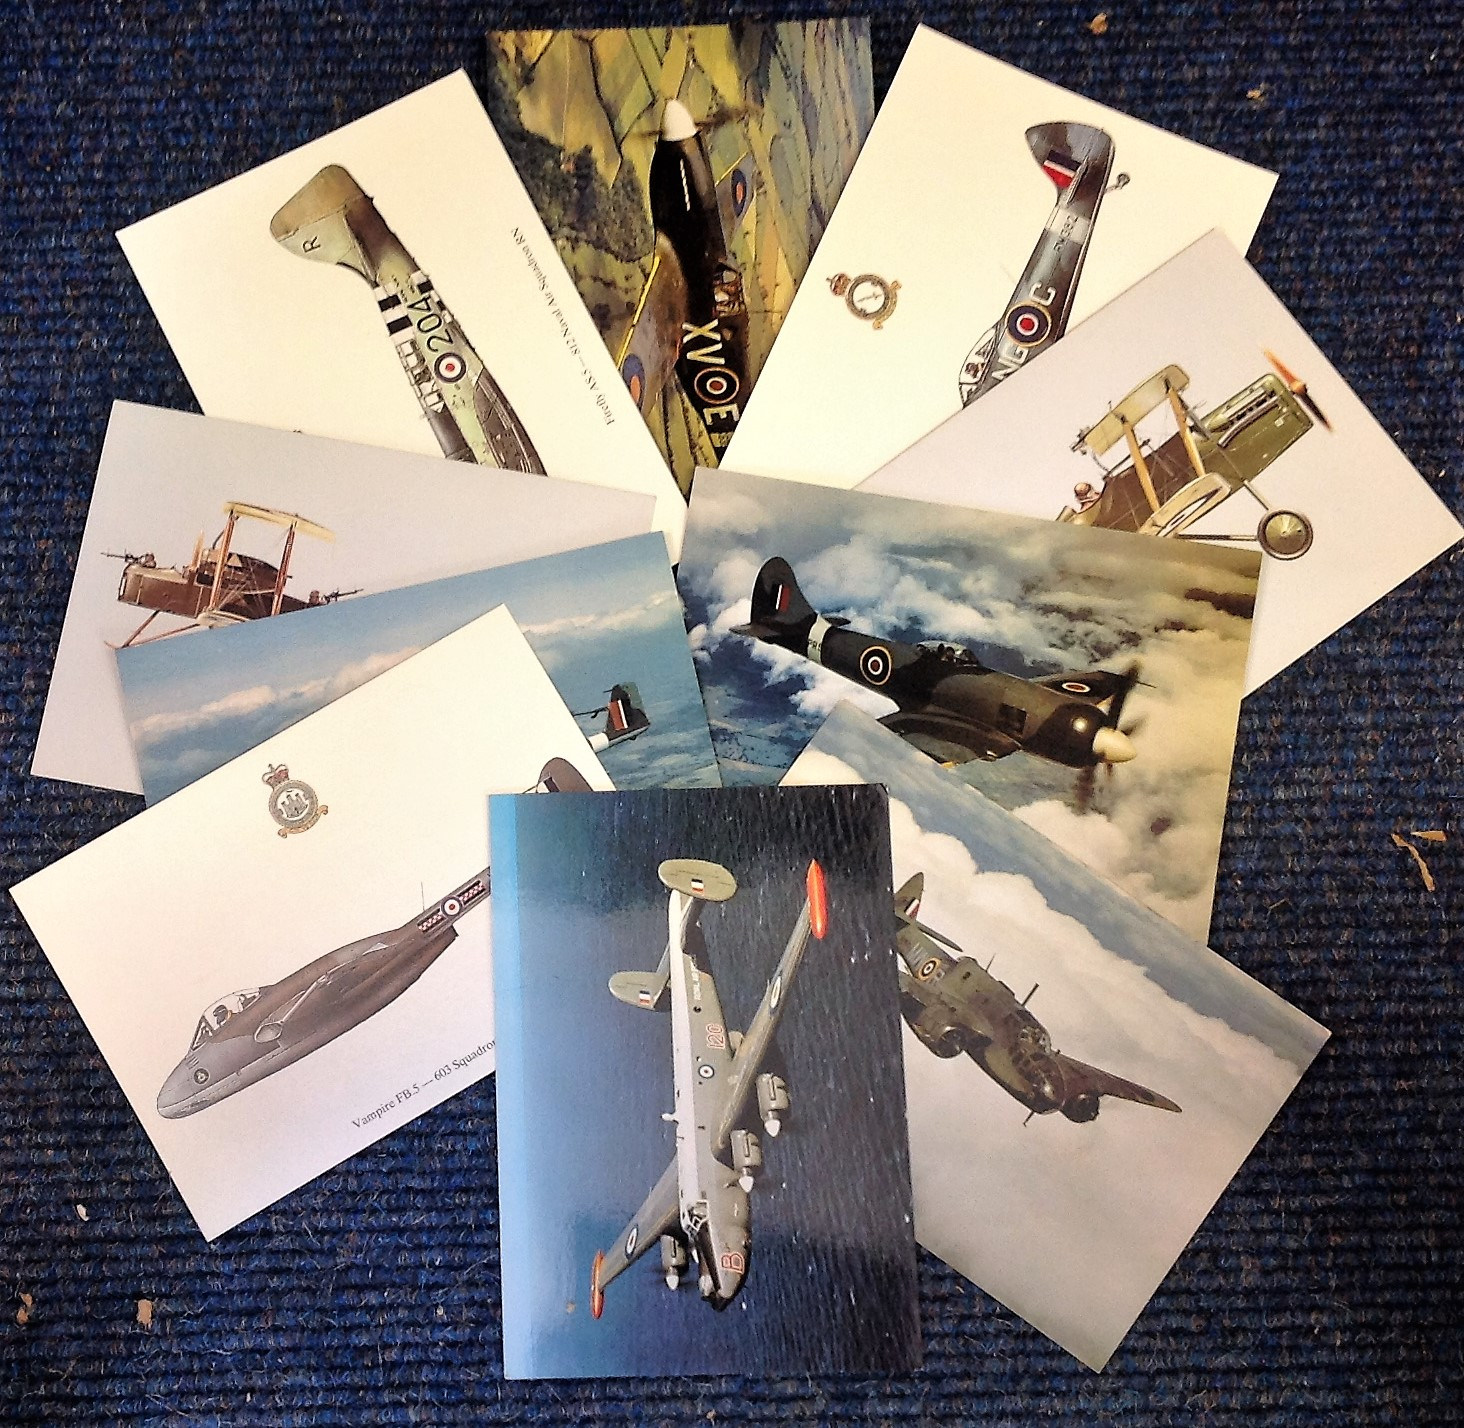 Lot 9 - Aviation postcard collection includes 10 squadron print cards such as Spitfire L. F. 16E-604,